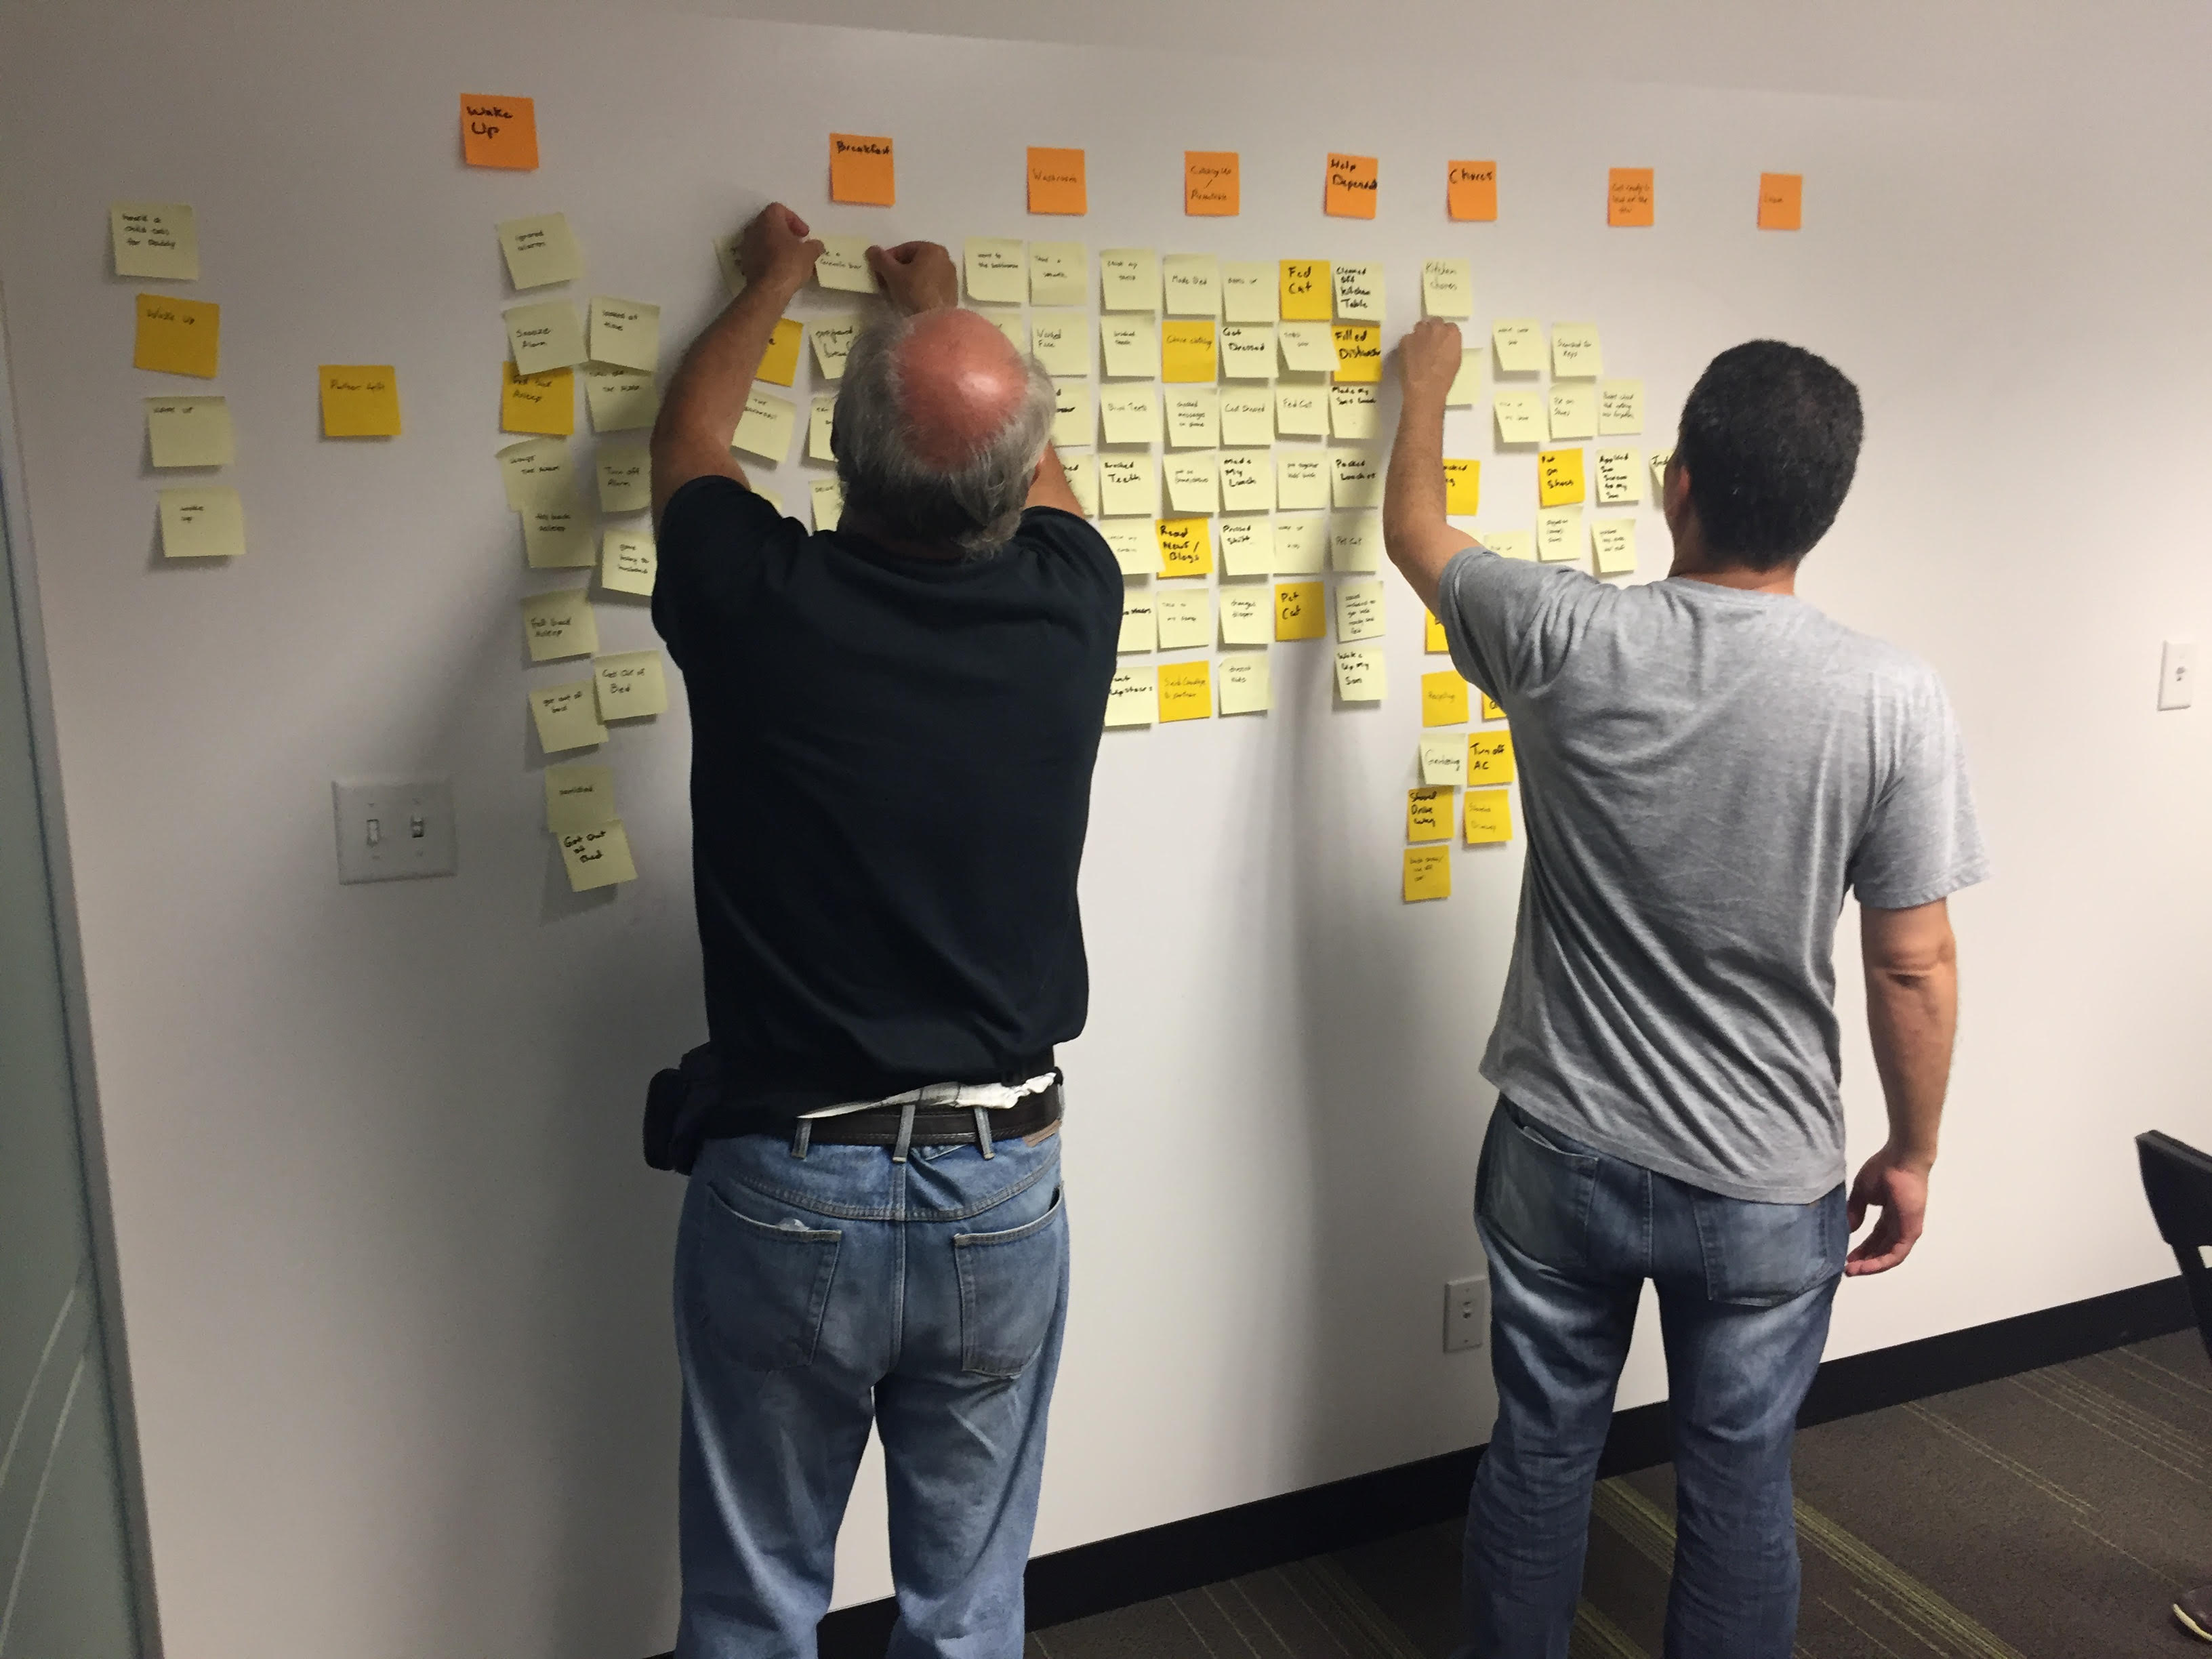 Two men putting post-its on whiteboard